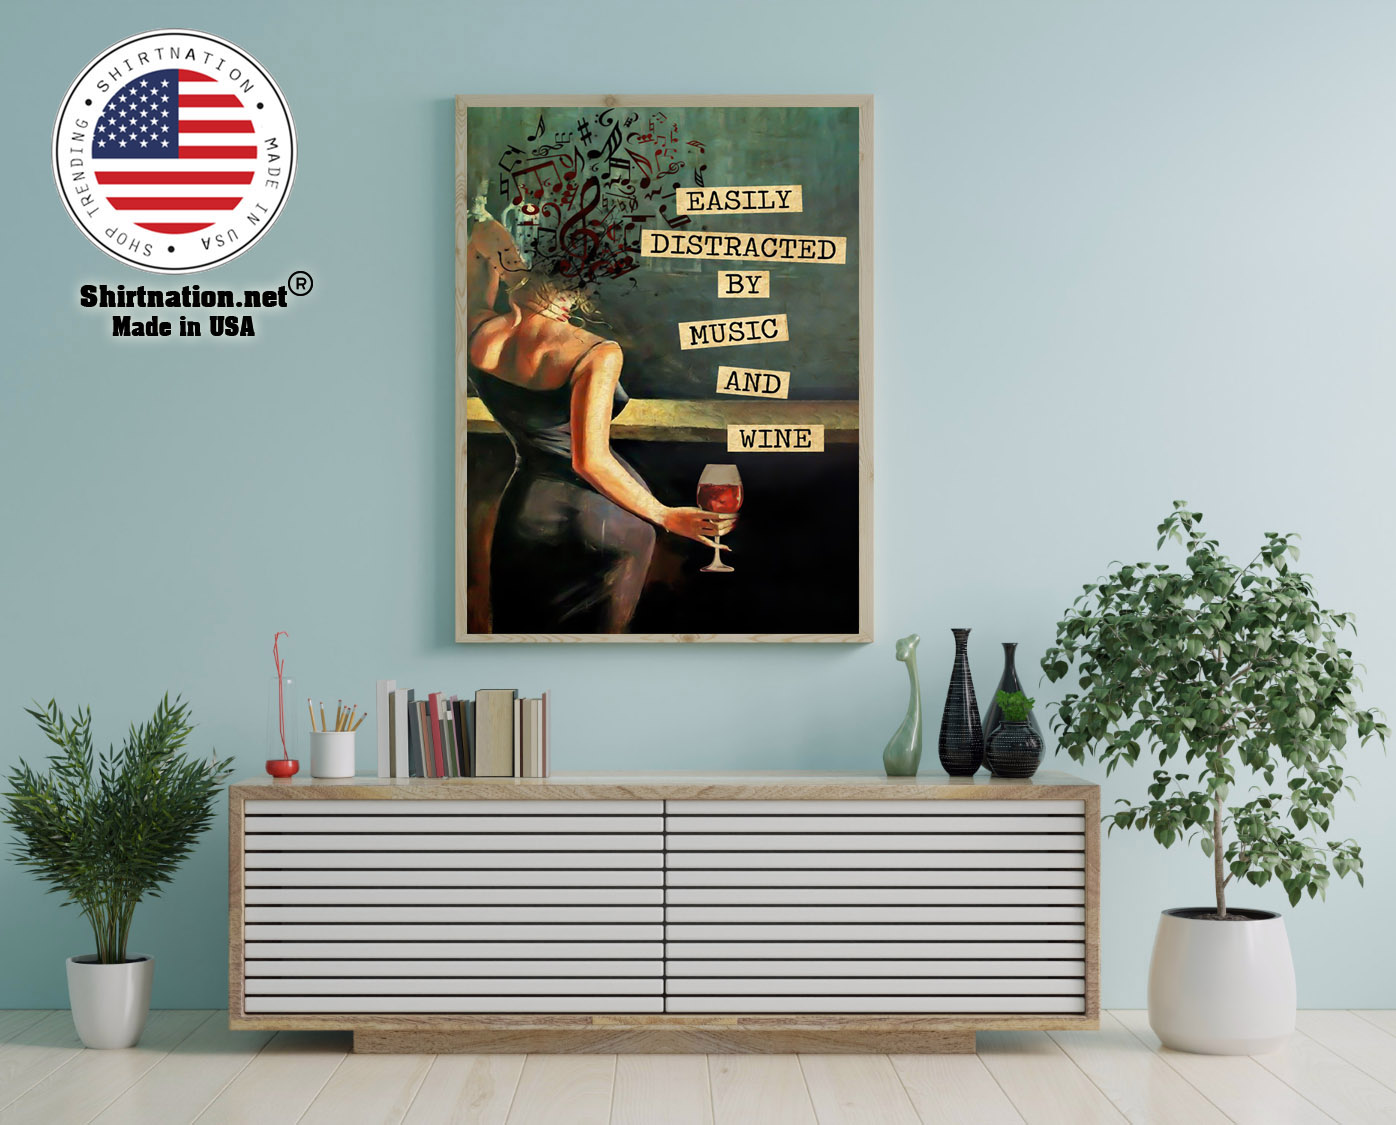 Vintage easily distracted by music and wine poster 12